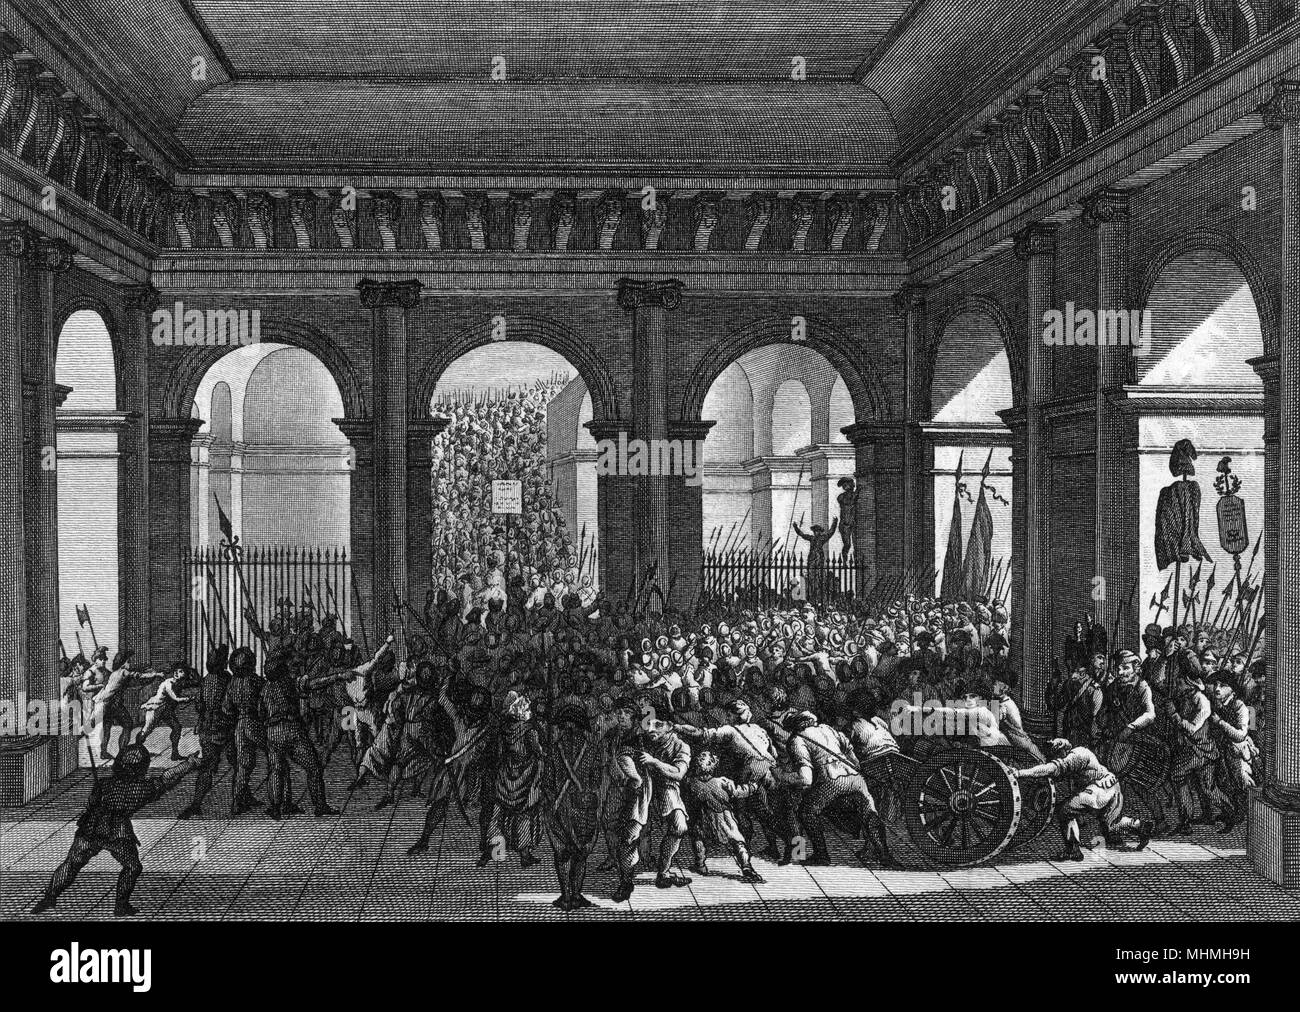 An crowd of 6000 angry citizens force their way into the Tuileries Palace, confront the king and demand that he withdraw his veto on the proposed reforms     Date: 20 June 1792 - Stock Image